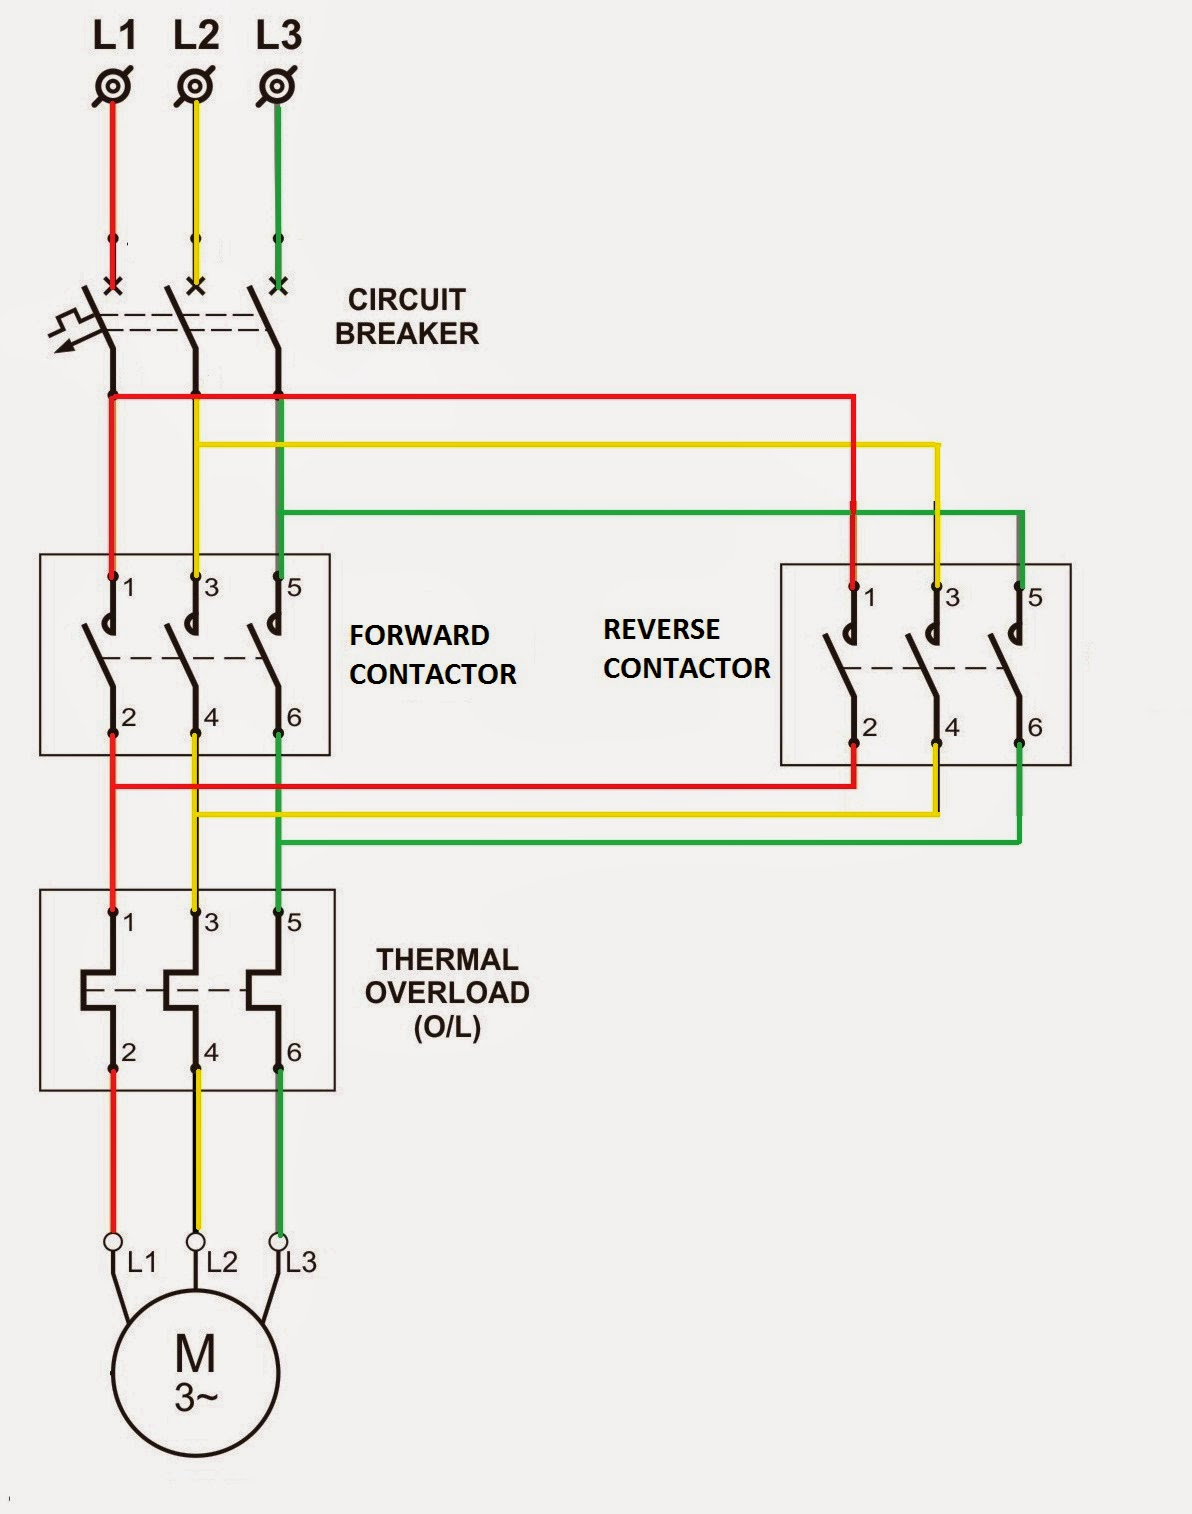 REVERSE+FORWARD wiring diagram for reversing contactor the wiring diagram reversing starter wiring diagram at eliteediting.co